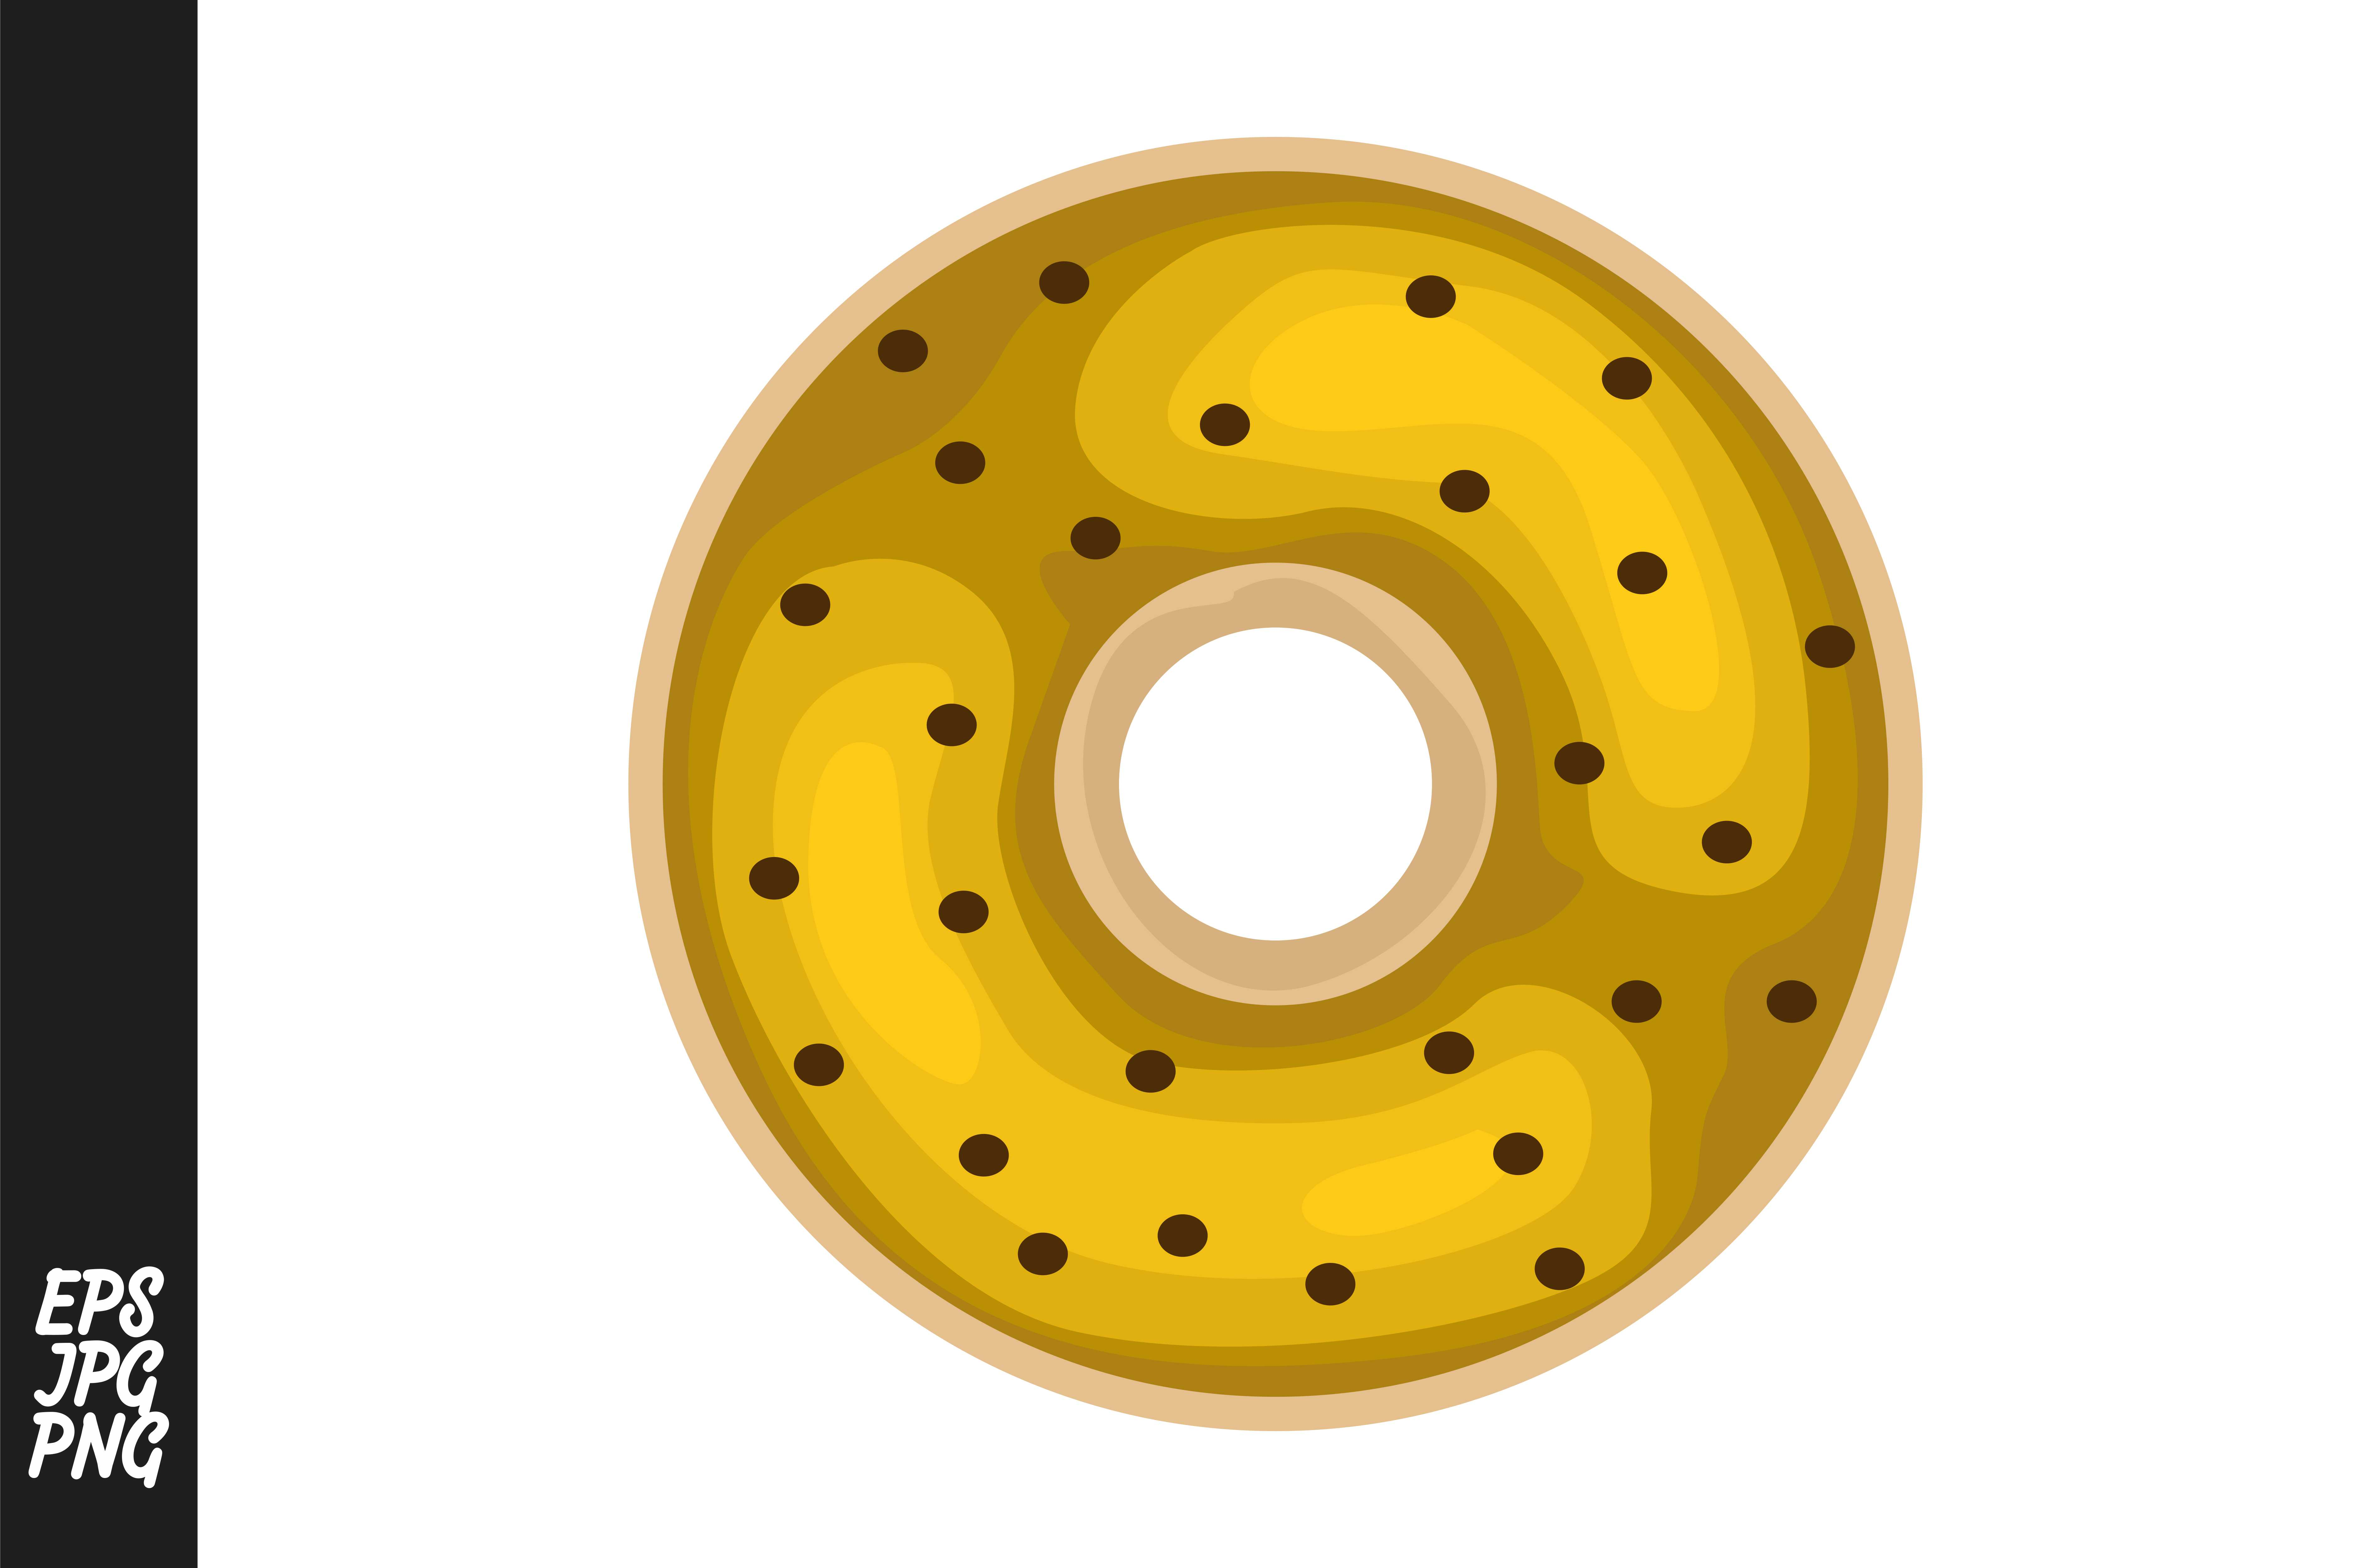 Download Free Donuts Vector Graphic By Arief Sapta Adjie Creative Fabrica for Cricut Explore, Silhouette and other cutting machines.